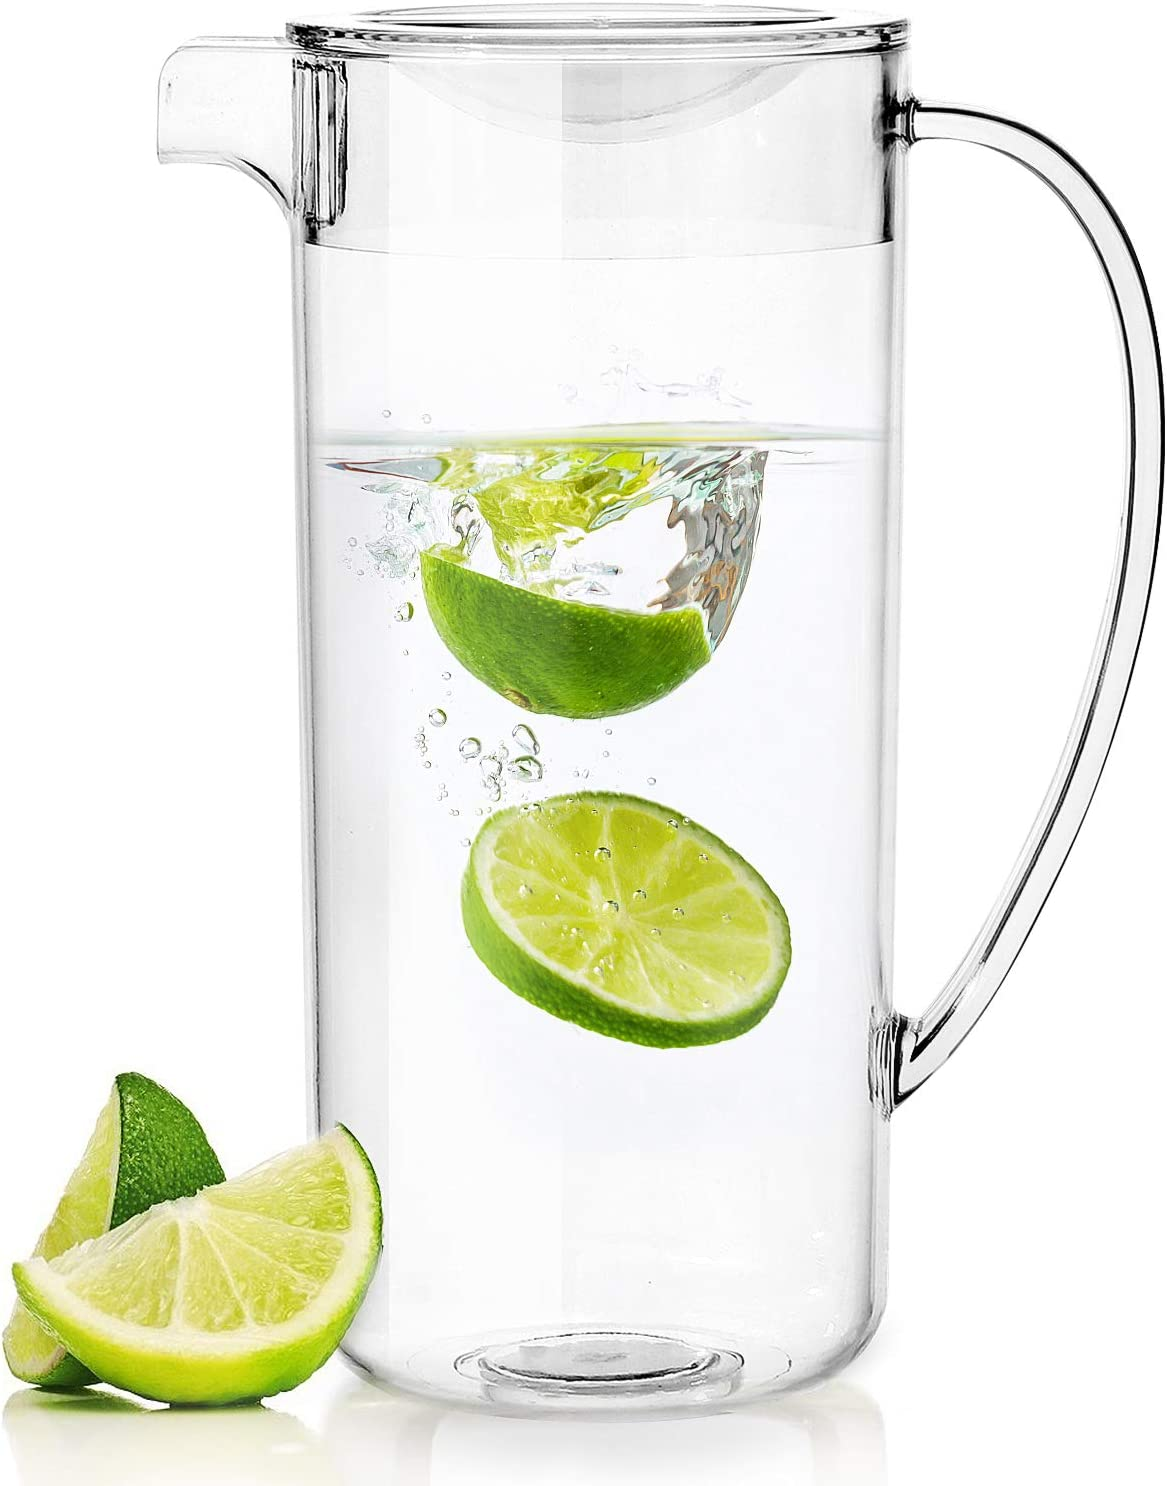 Youngever 2 Quarts Plastic Pitcher With Lid, Clear Plastic Pitcher Great for Iced Tea, Sangria, Lemonade, and More